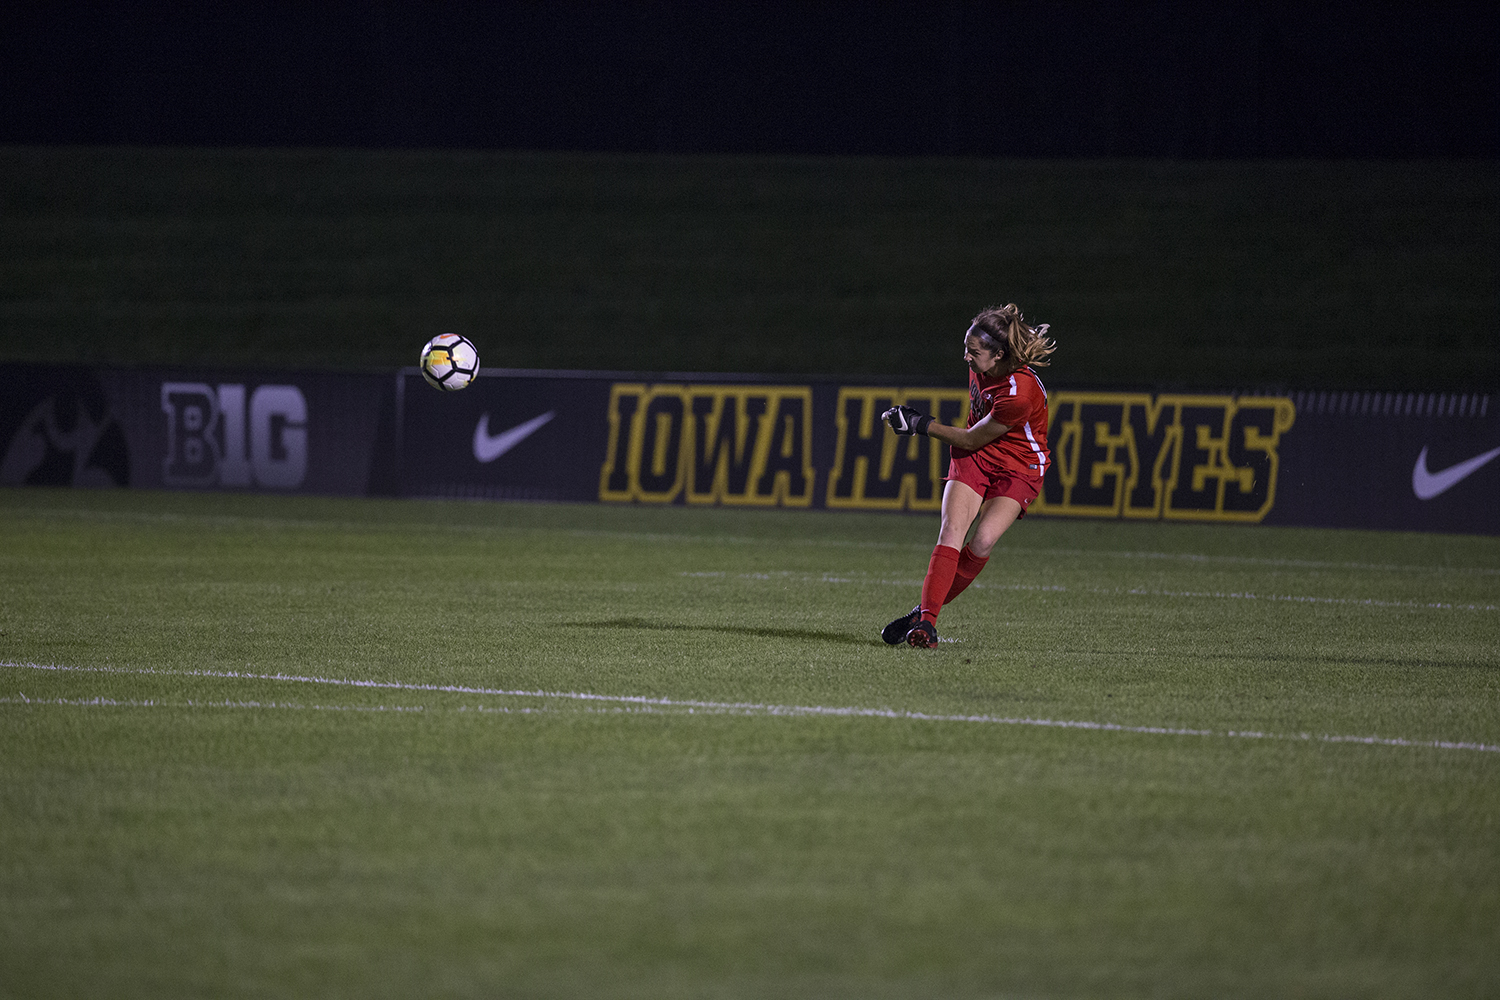 Sophomore Cora Meyer kicks the ball during the Iowa vs. Purdue soccer game on Sept. 20, 2018 at the Iowa Soccer Complex in Iowa City. Iowa tied Purdue 1-1 in overtime.